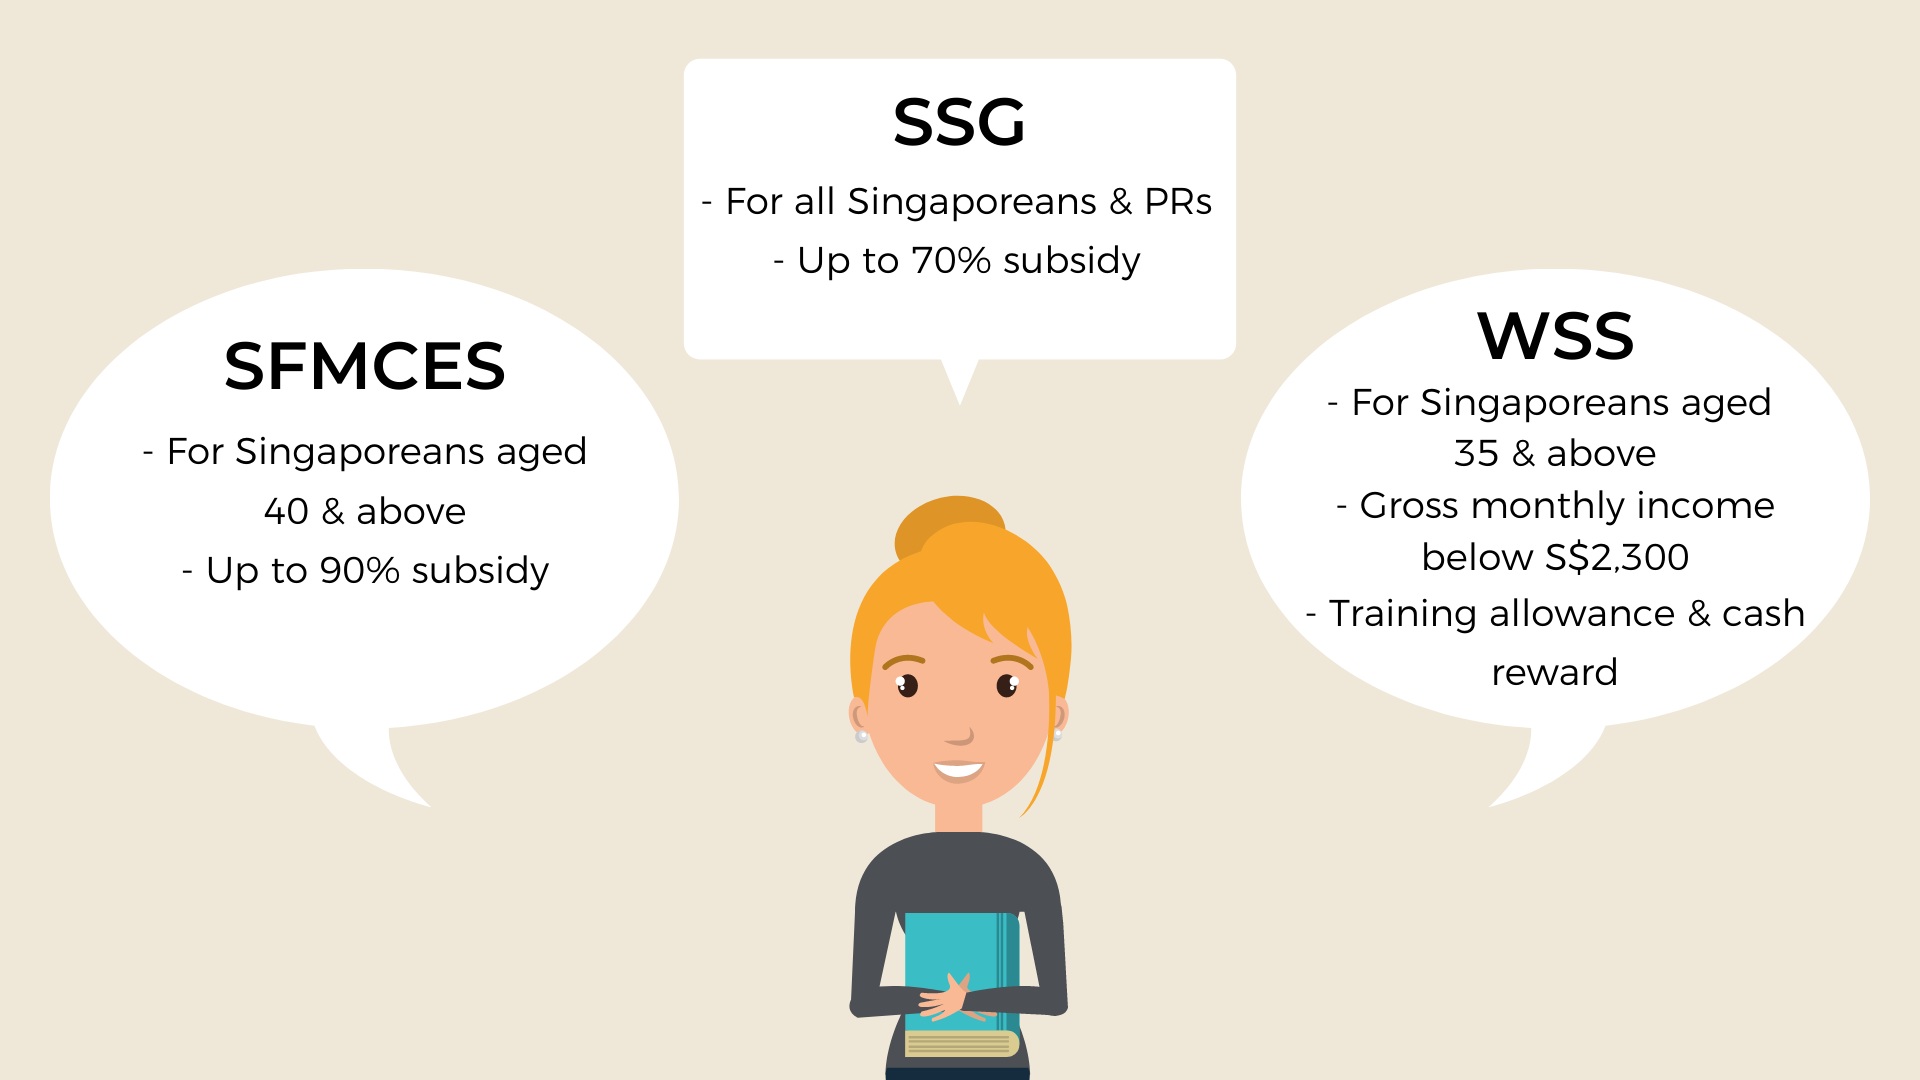 Student explains the different criteria to be eligible for grants and subsidies specifically SSG, SFMCES and WSS.